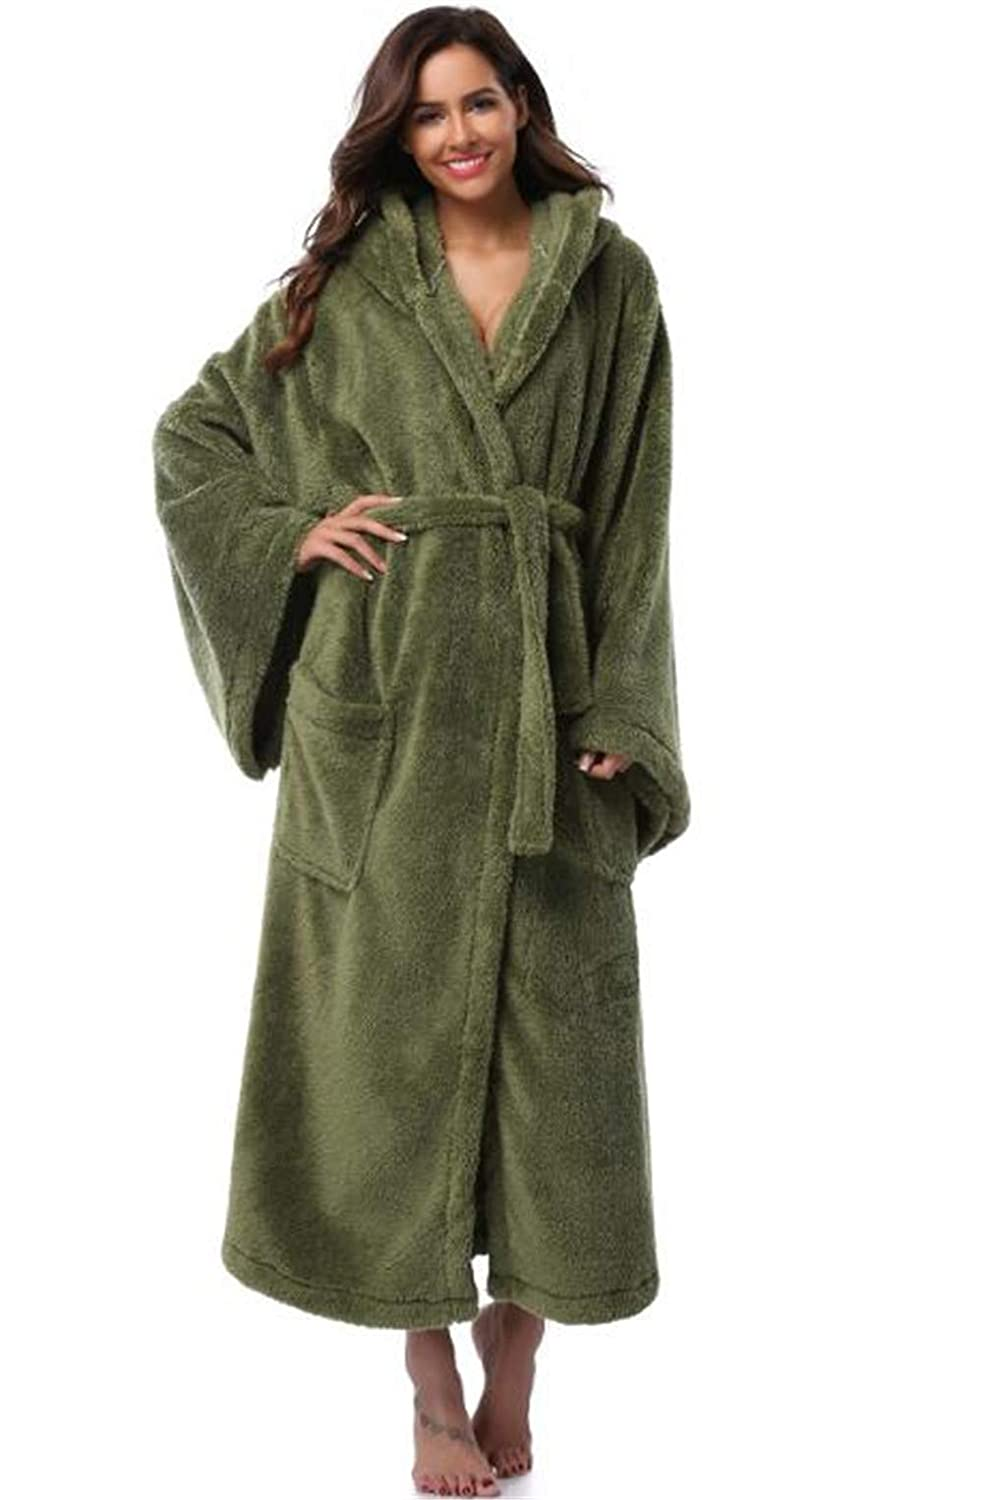 Green Julitia Winter Thick Warm Women Robes 2018 Coral Fleece Sleepwear Long Robe Woman Hotel